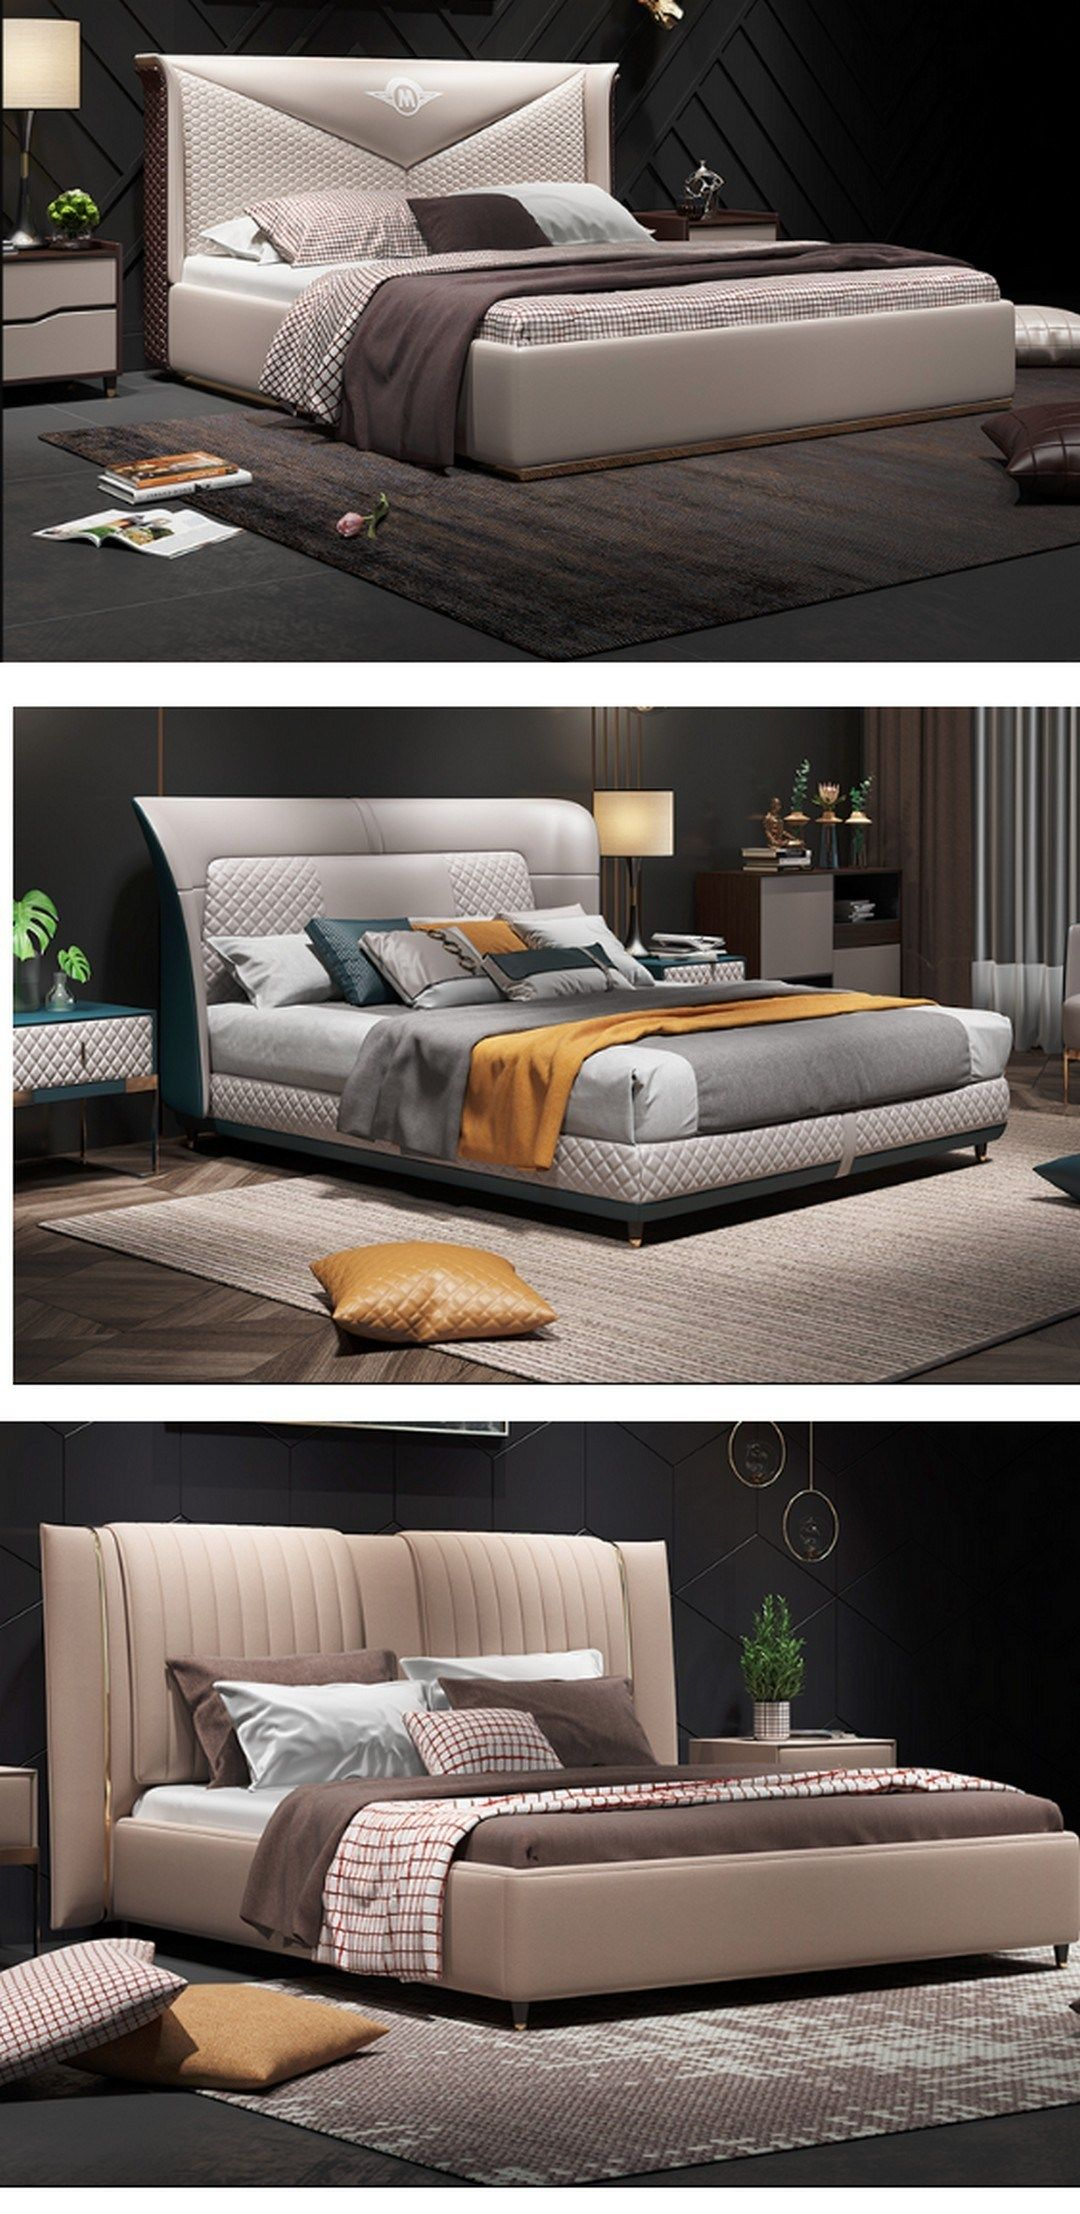 63 Awesome Double Bed Idea 28 Bed Design Modern Bed Design Bedroom Bed Design Double bedroom suite furniture